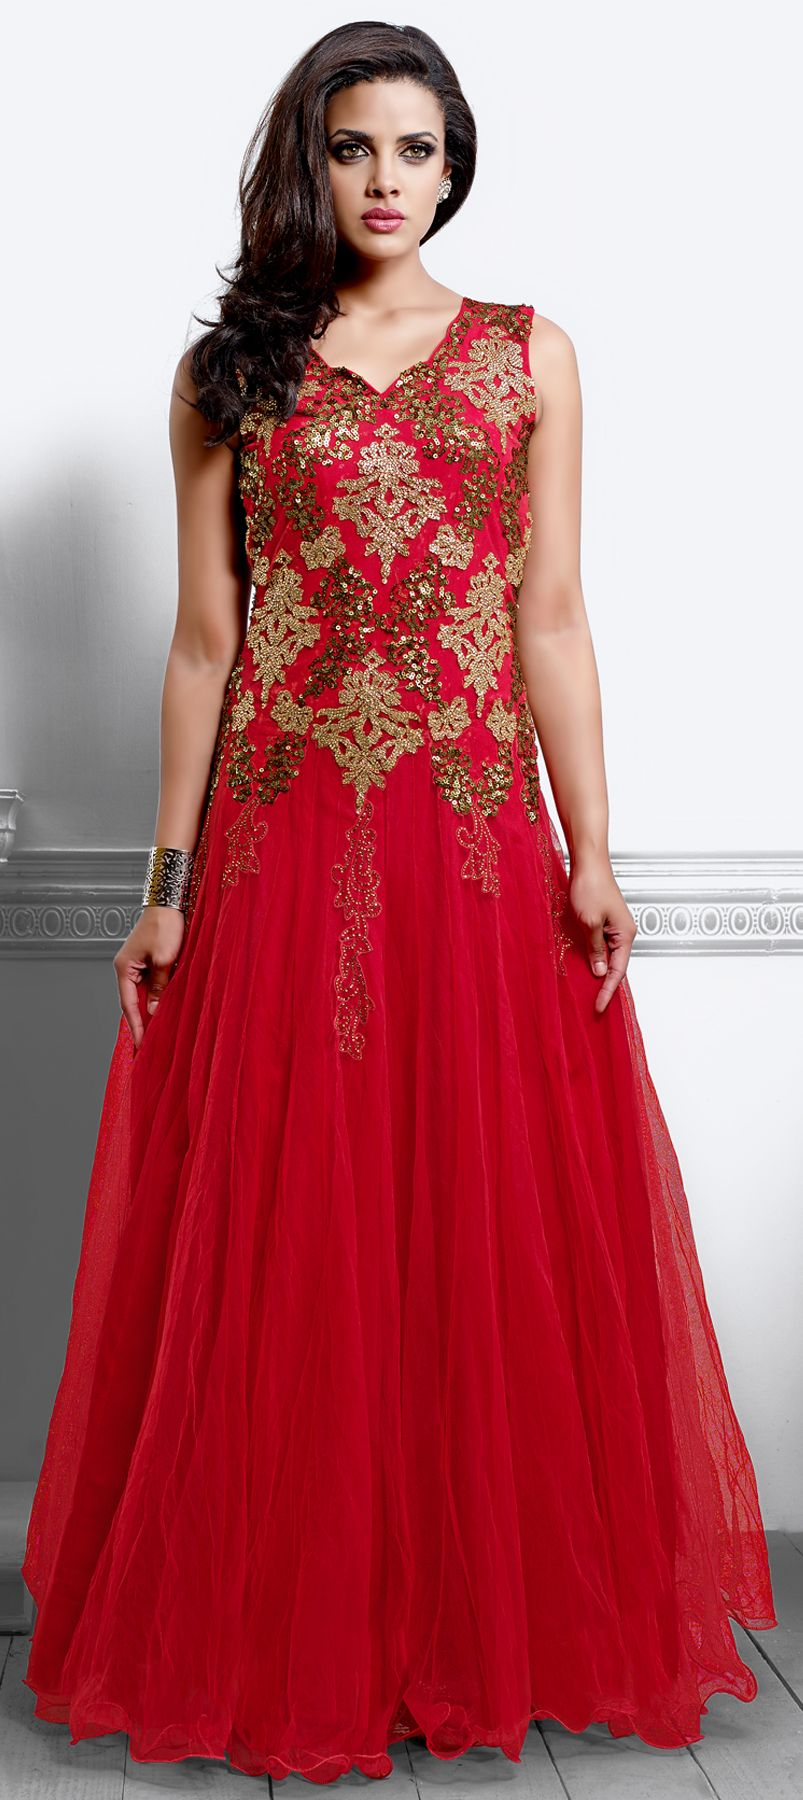 423692 red and maroon color family stitched gown camize dress 423692 red and maroon color family stitched gown ombrellifo Image collections